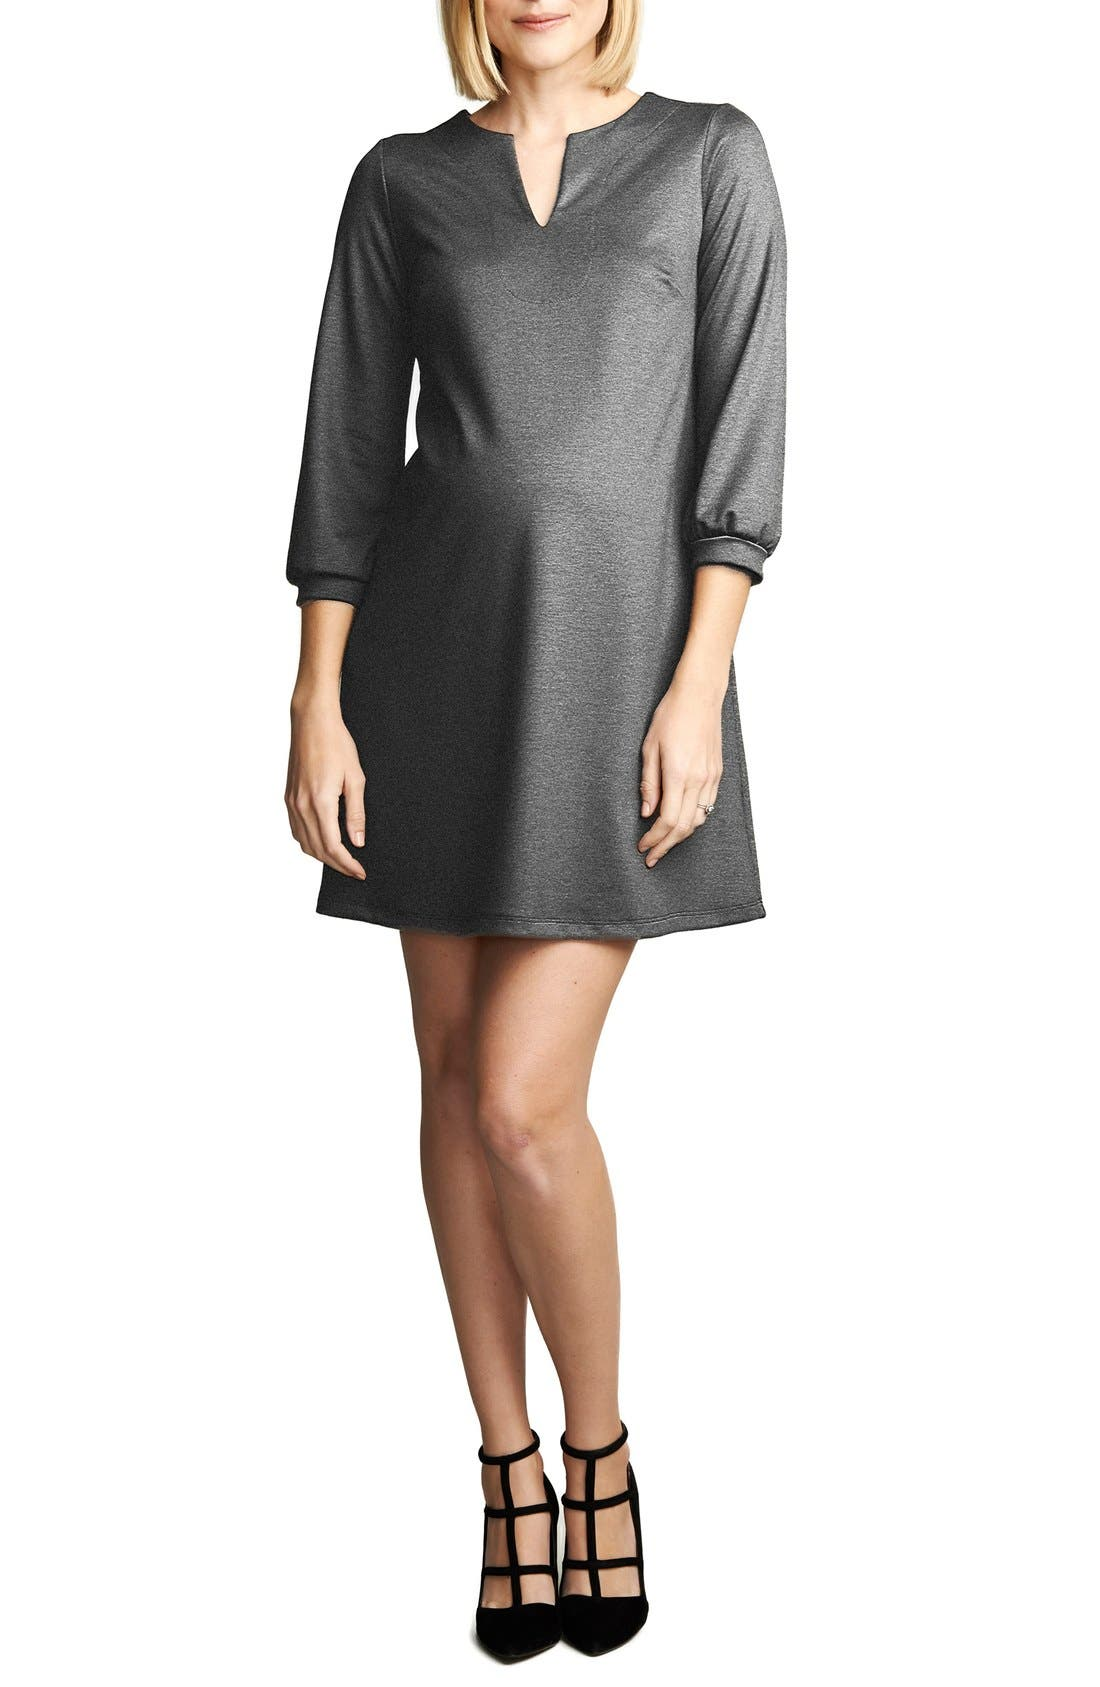 Shift Maternity Dress,                             Main thumbnail 1, color,                             Heather Charcoal